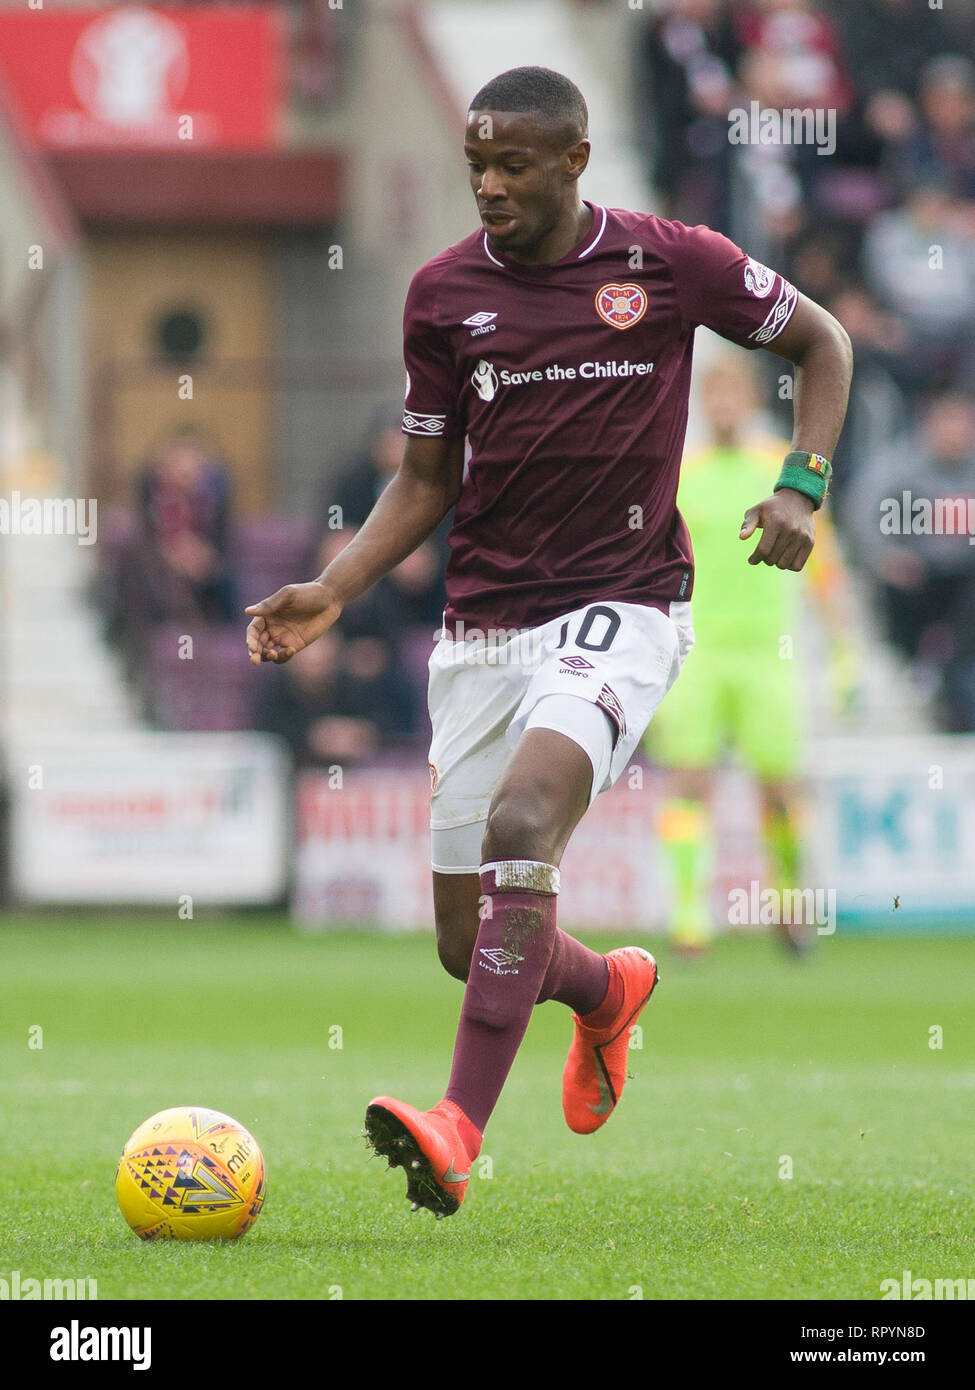 Tynecastle Park, Edinburgh, UK. 23th February 2019. Football. Ladbrokes Premiership league fixture between Hearts and St Mirren; Arnaud Djoum of Hearts  Credit: Scottish Borders Media/Alamy Live News  Editorial use only, license required for commercial use. No use in betting. Stock Photo